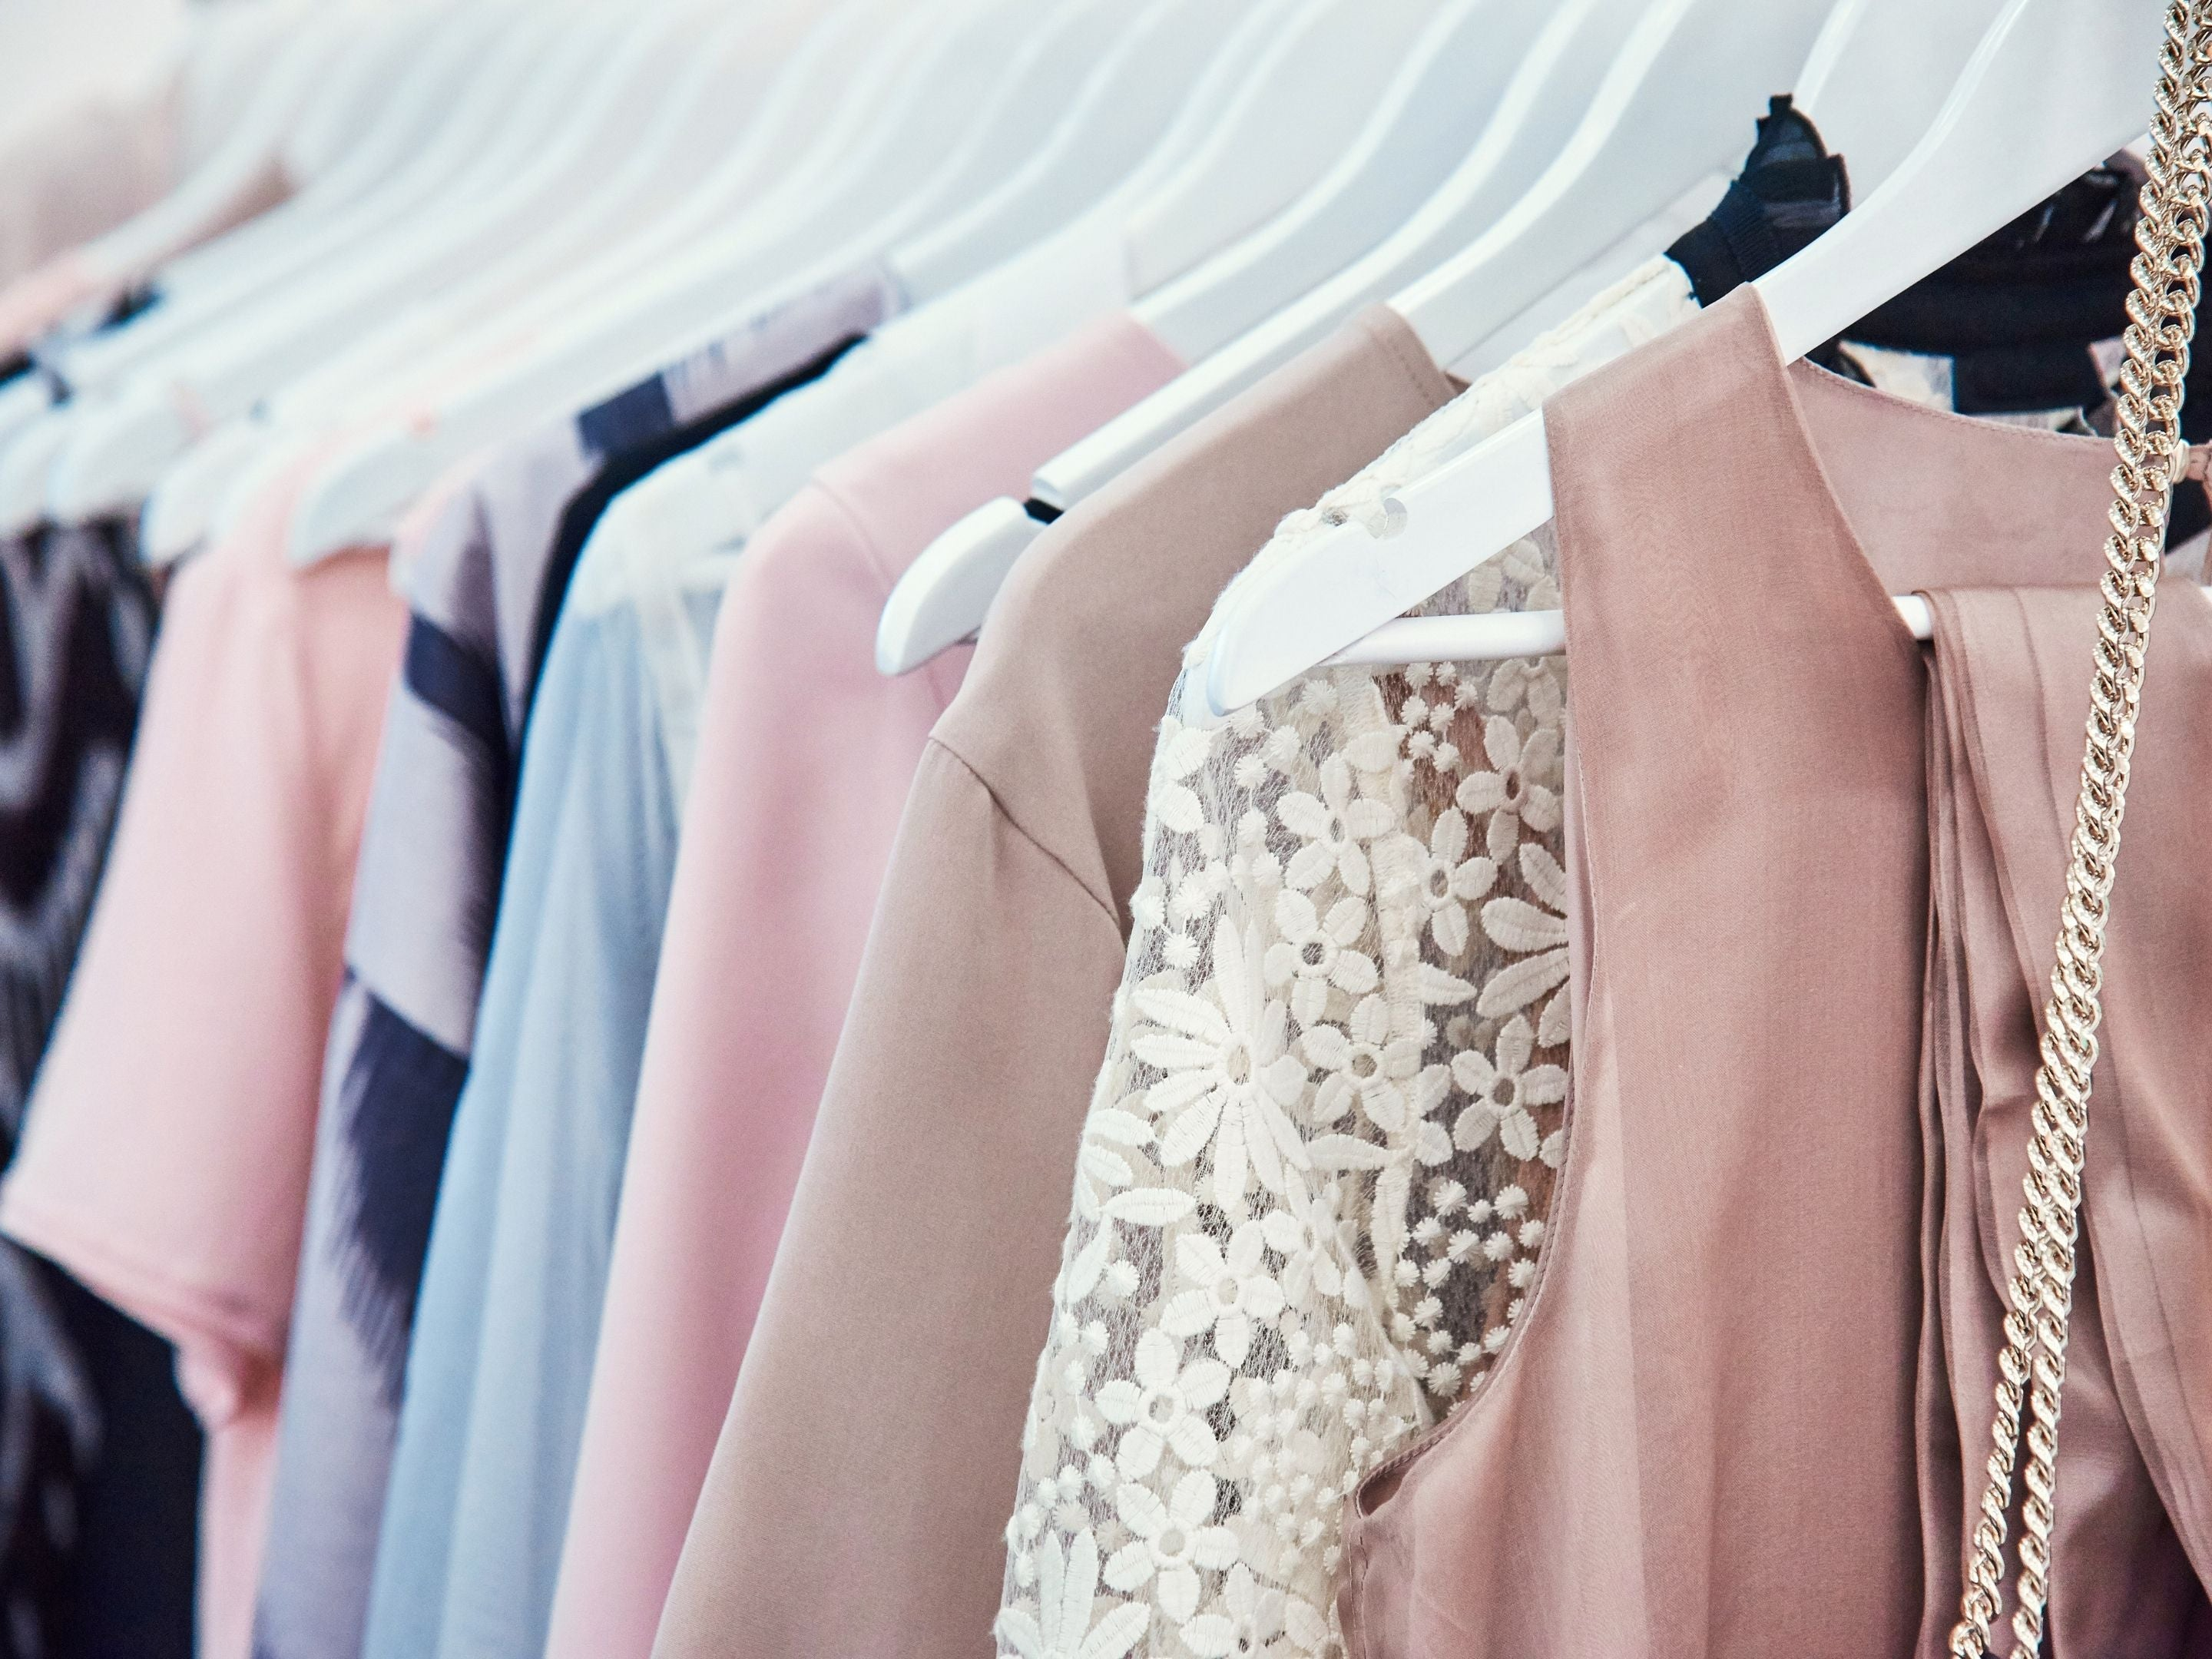 Assorted Garments Hanging in a Closet on Hangers